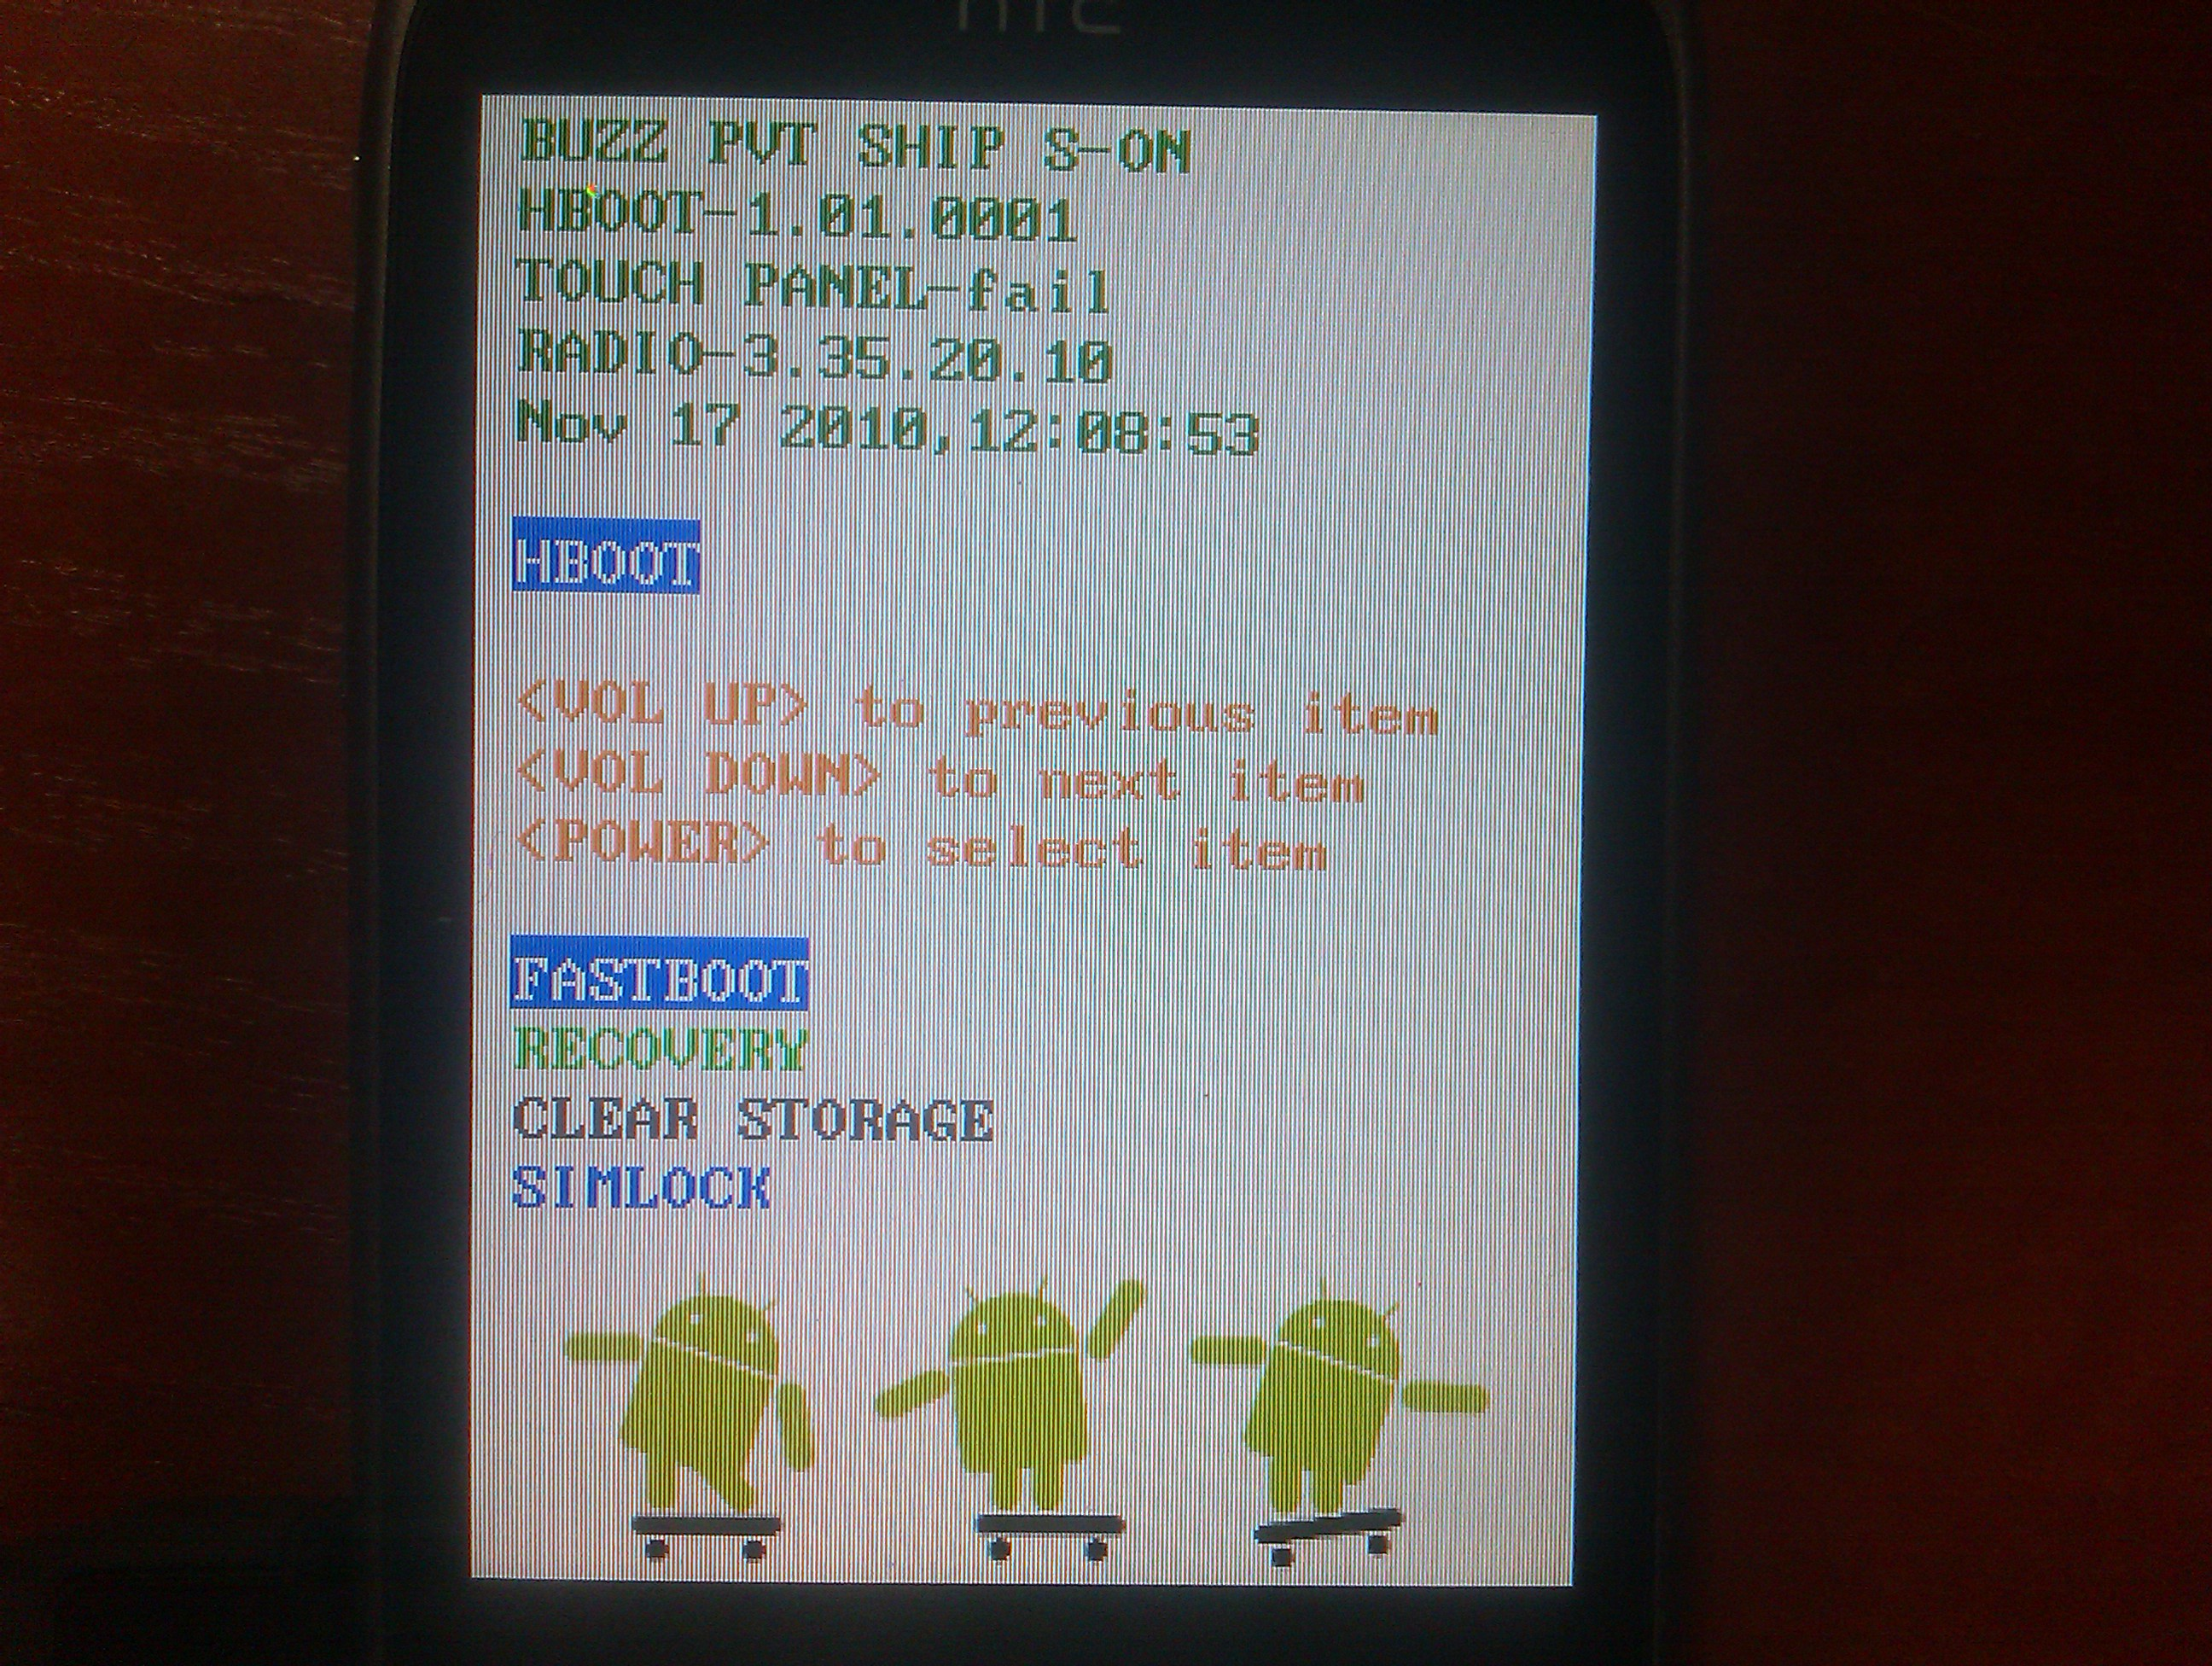 htc wildfire a3333 - TOUCH PANEL - fail